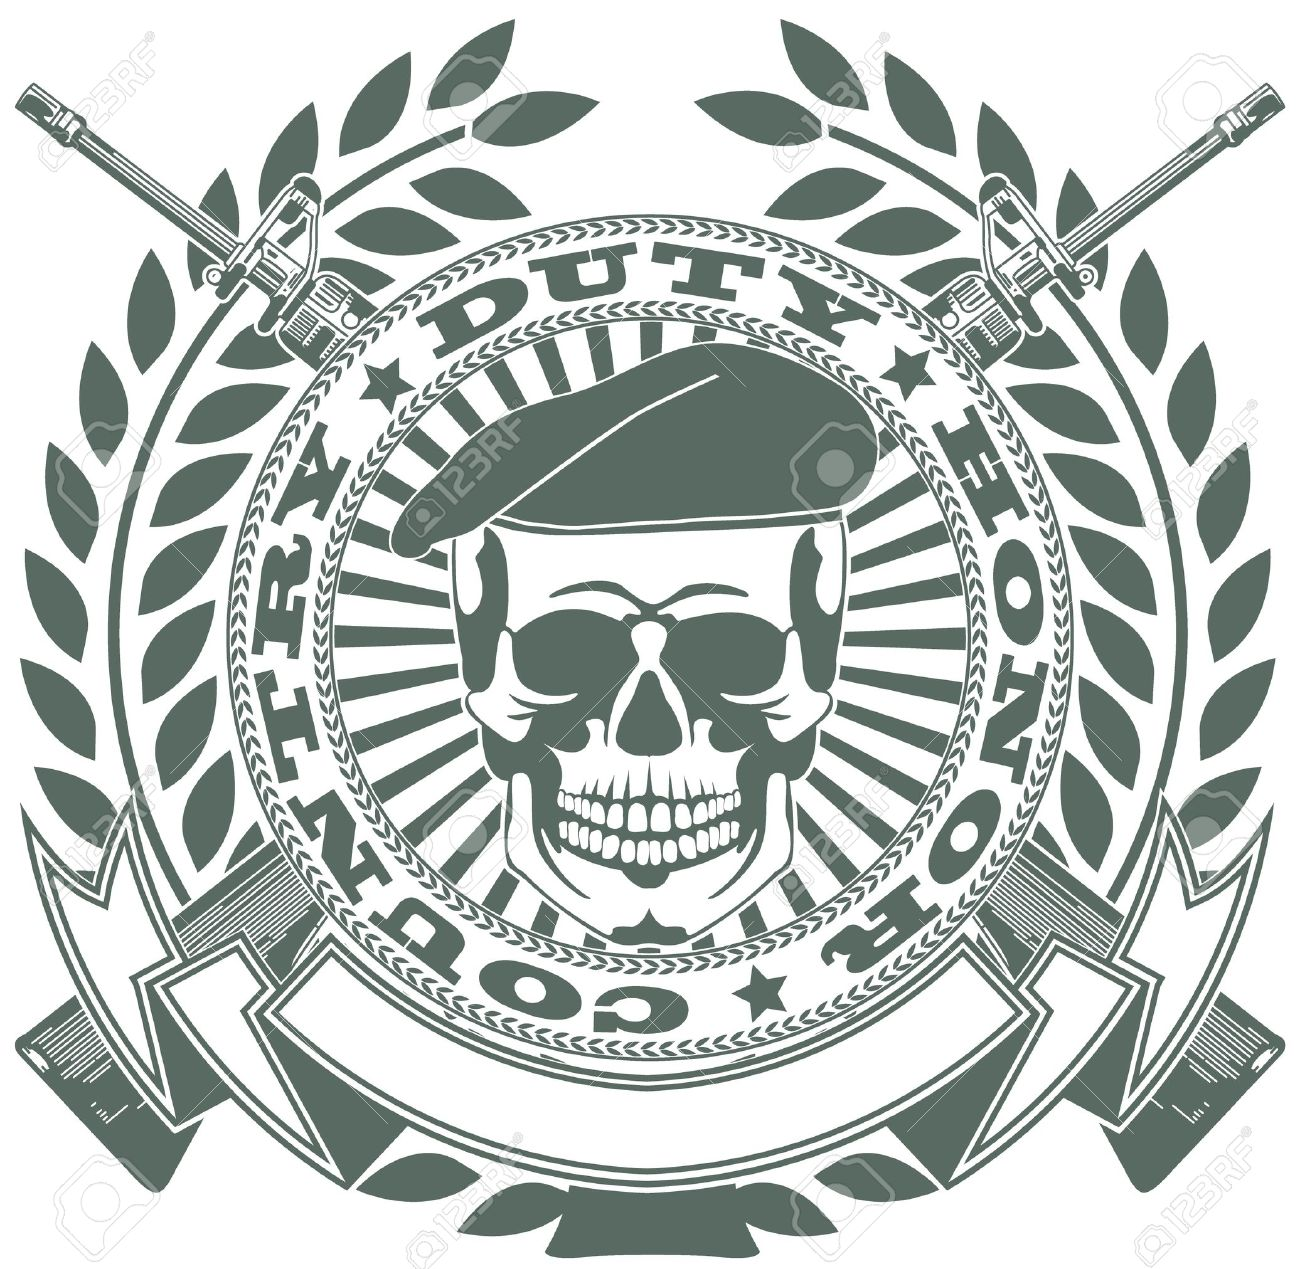 The vector image Army symbol